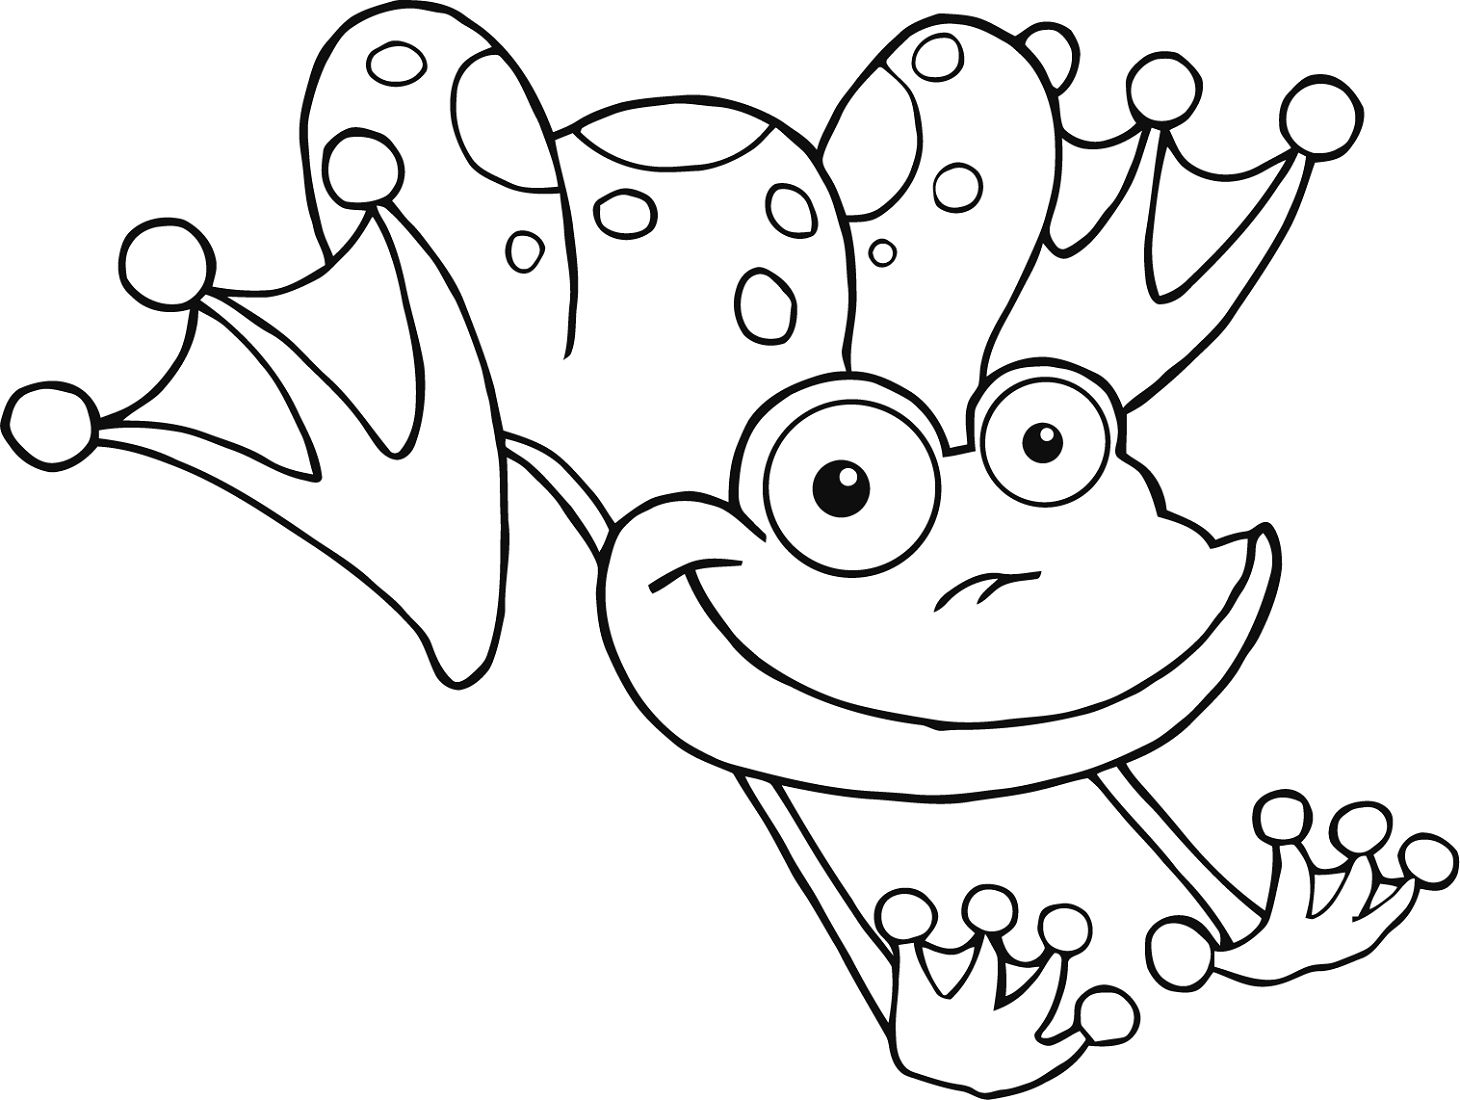 printable frog pictures for kids